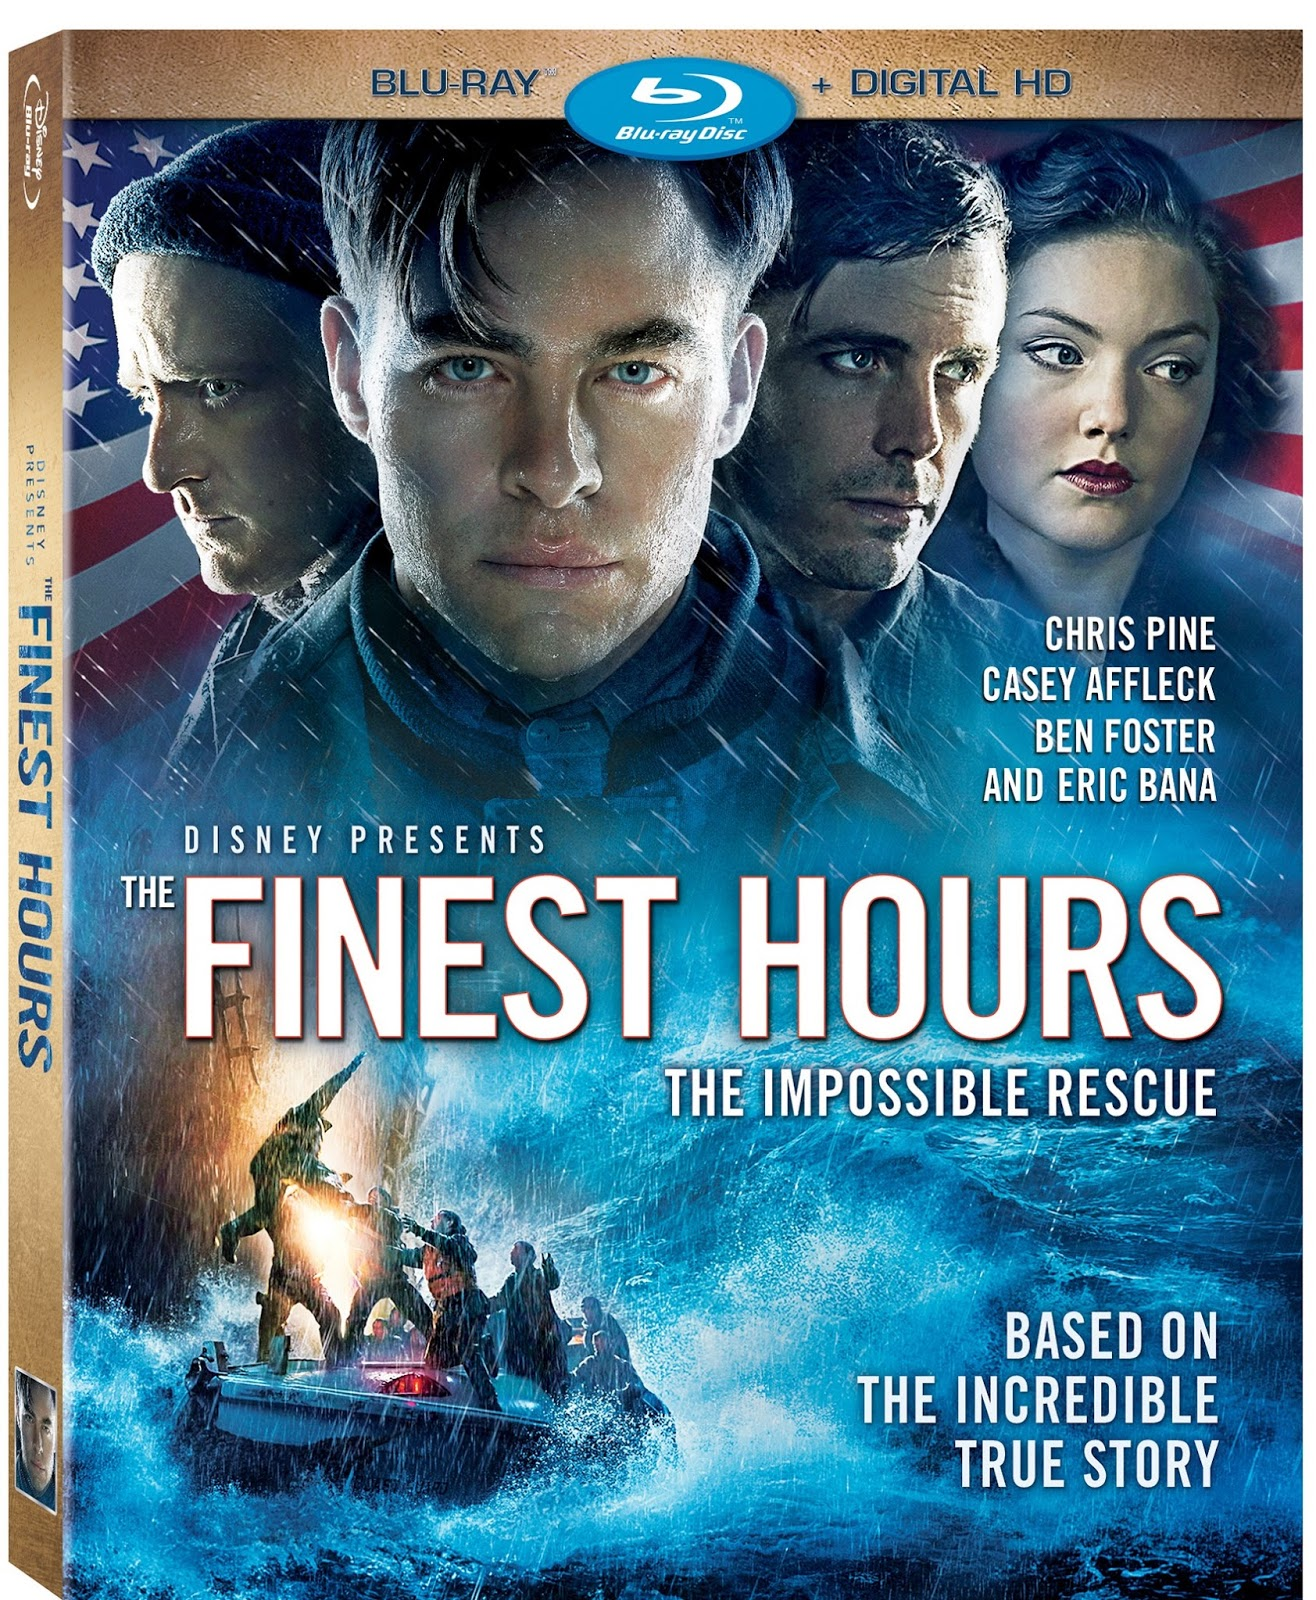 Sasaki Time: The Finest Hours - On Blu-ray and Digital HD May 24